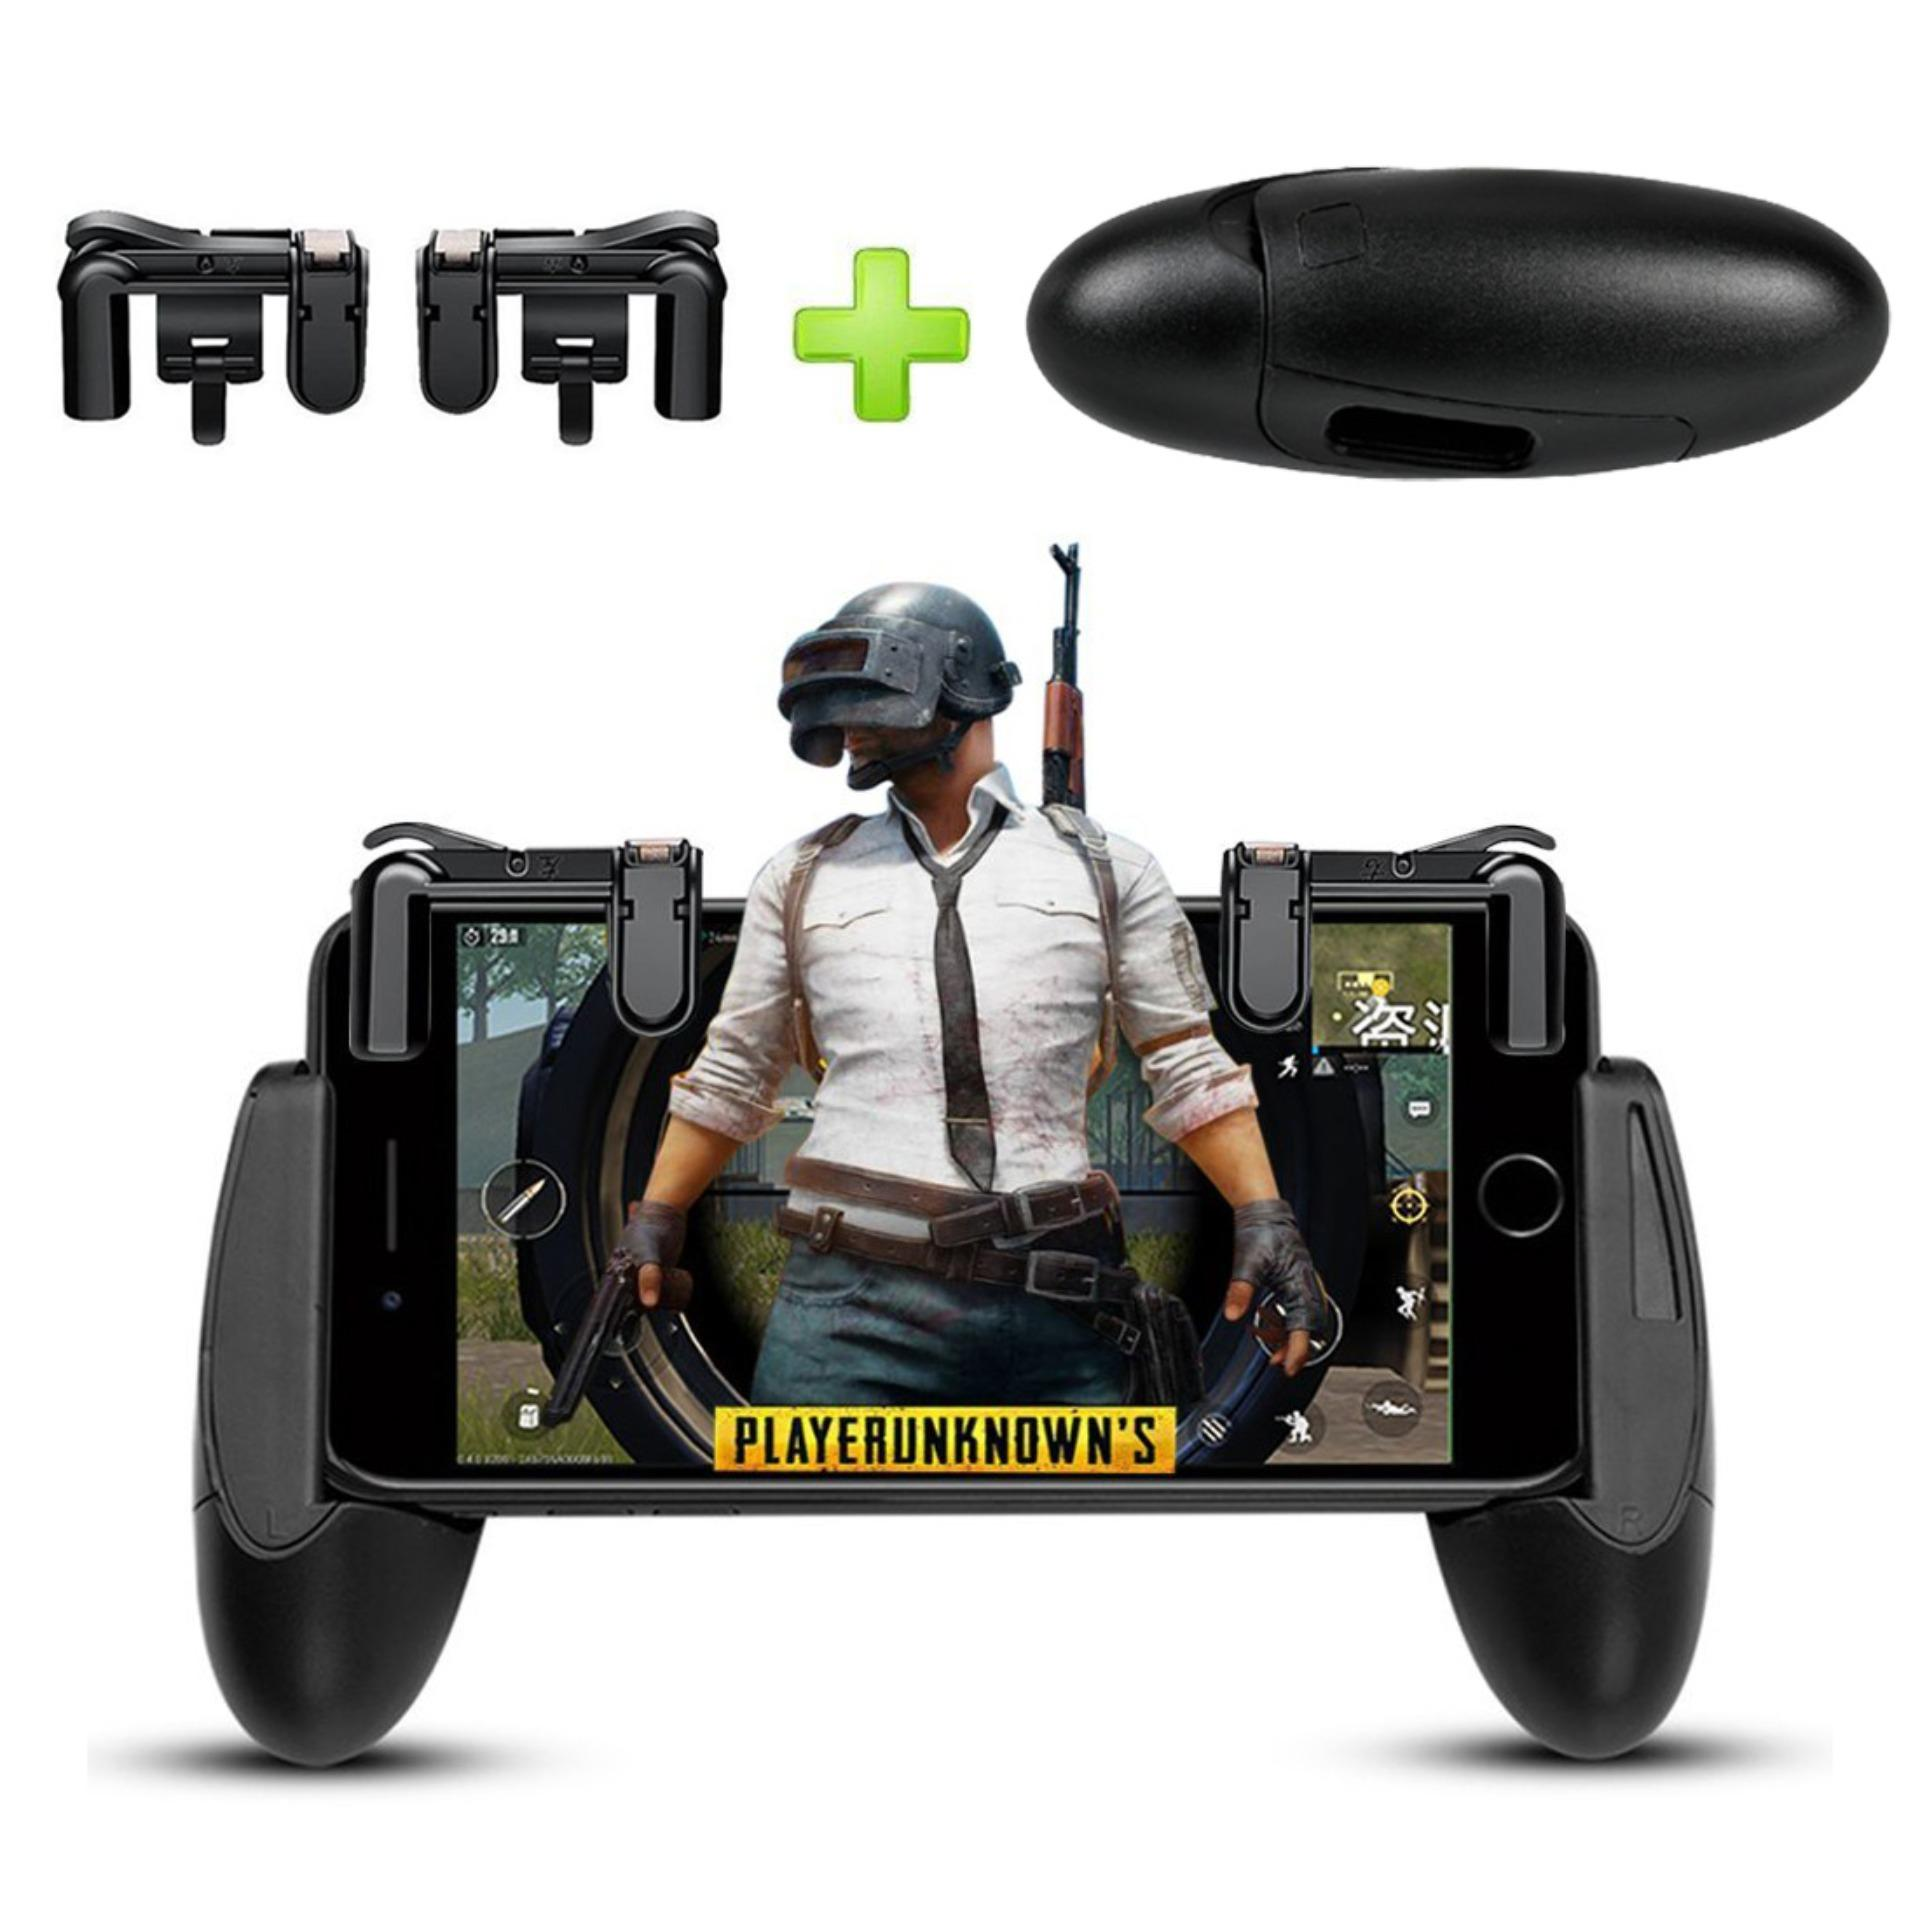 1 Set Gamepad Grip Extended Handle and Survival Game Triggers Eat Chicken Shooting Games Shortcut Key L1R1 Joysticks Trigger Fire Button Aim Key Controller Accessories For PUBG ROS, Rules Of Survival, Last Battle Ground, Survivor Royale, Free Fire - intl